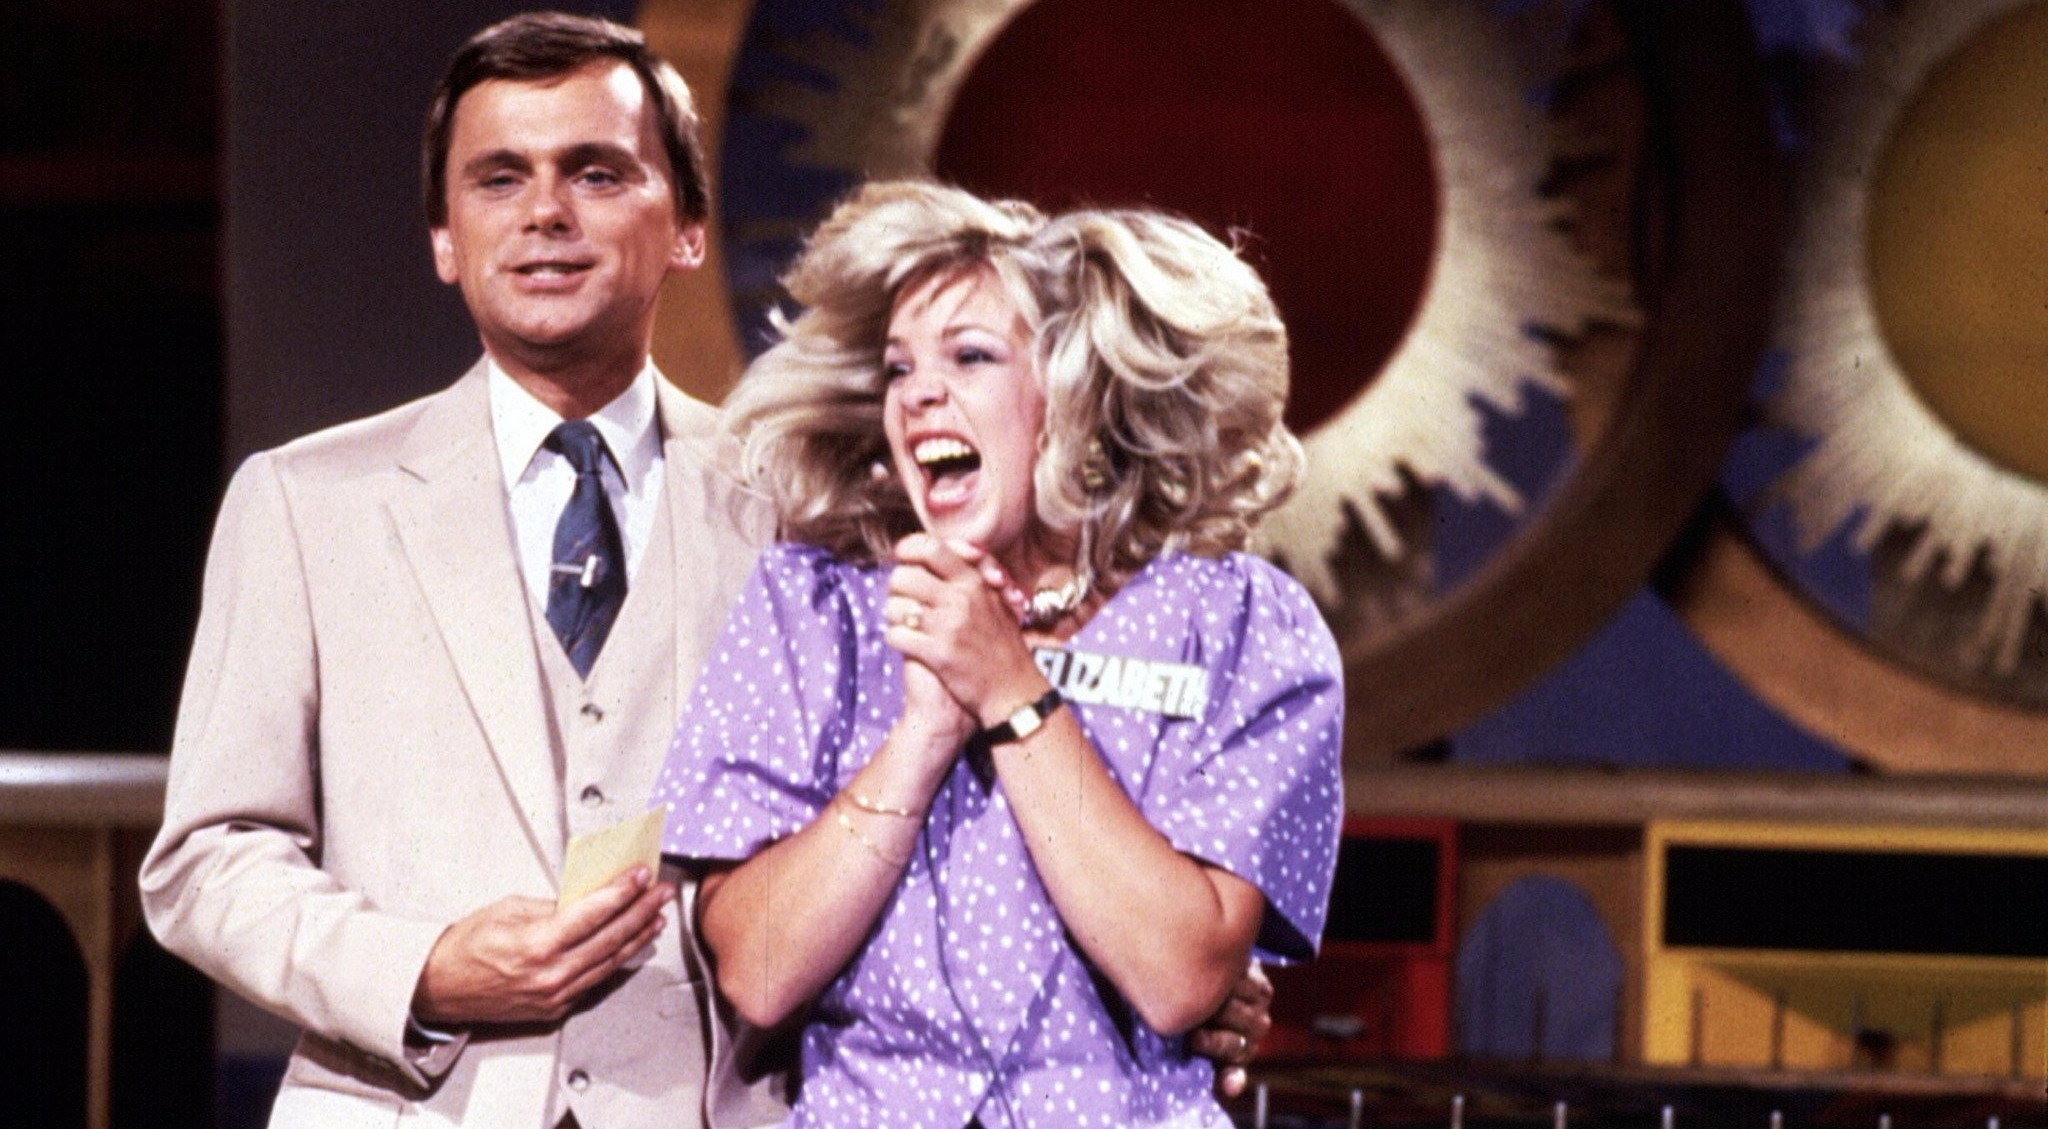 Young Vanna White clapping her hand in excitement on set of the show Wheel of Fortune. Pat Sajak and Vanna White have been rumored to have an affair but they have denied the allegation stating their relationship to be as that of a brother and sister.